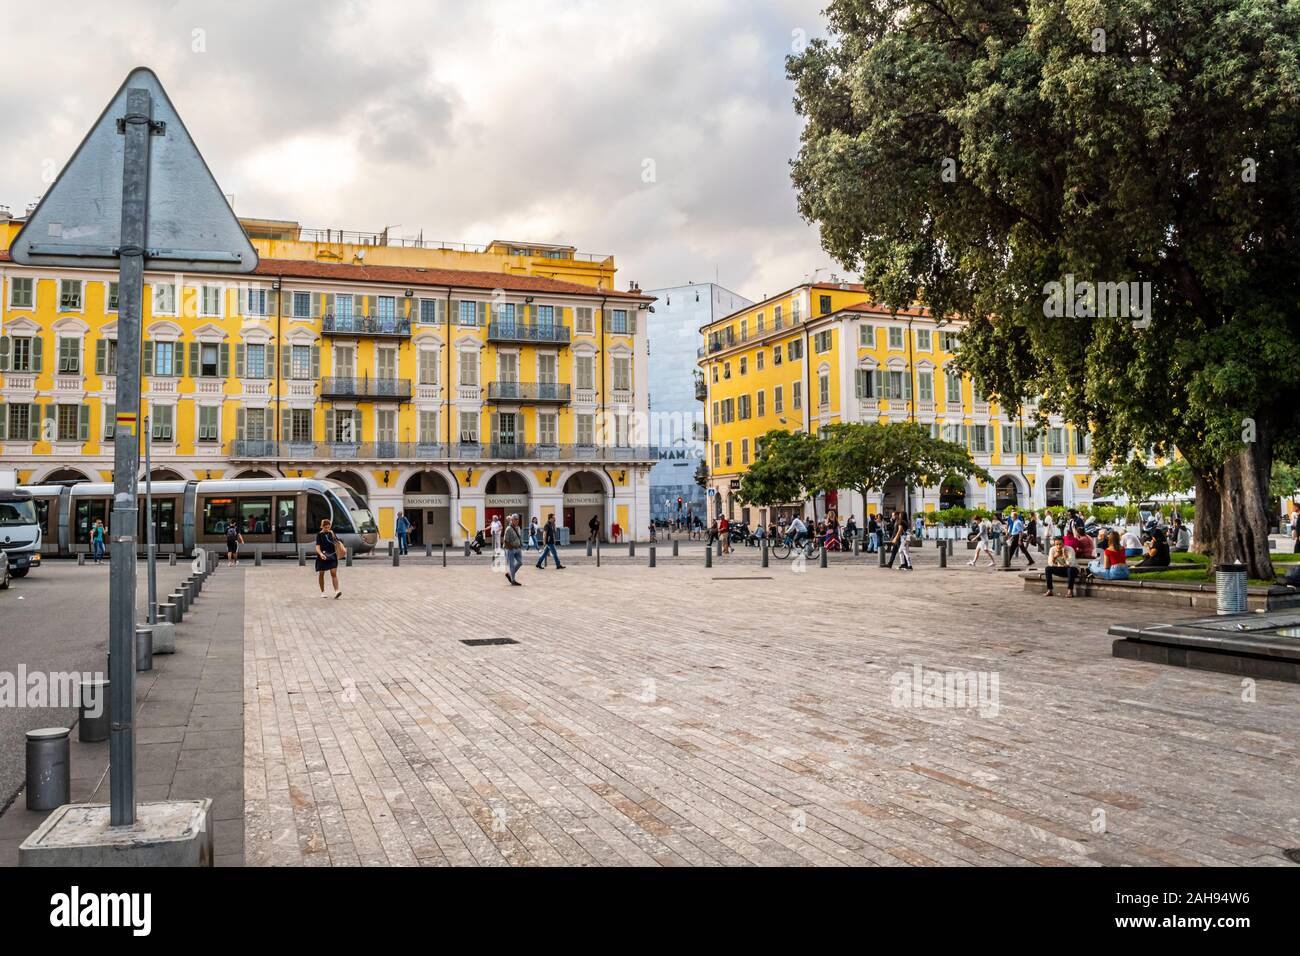 Local French men and women relax near the water fountain and statue in Place Garibaldi as a tram goes by in central Nice, France. Stock Photo